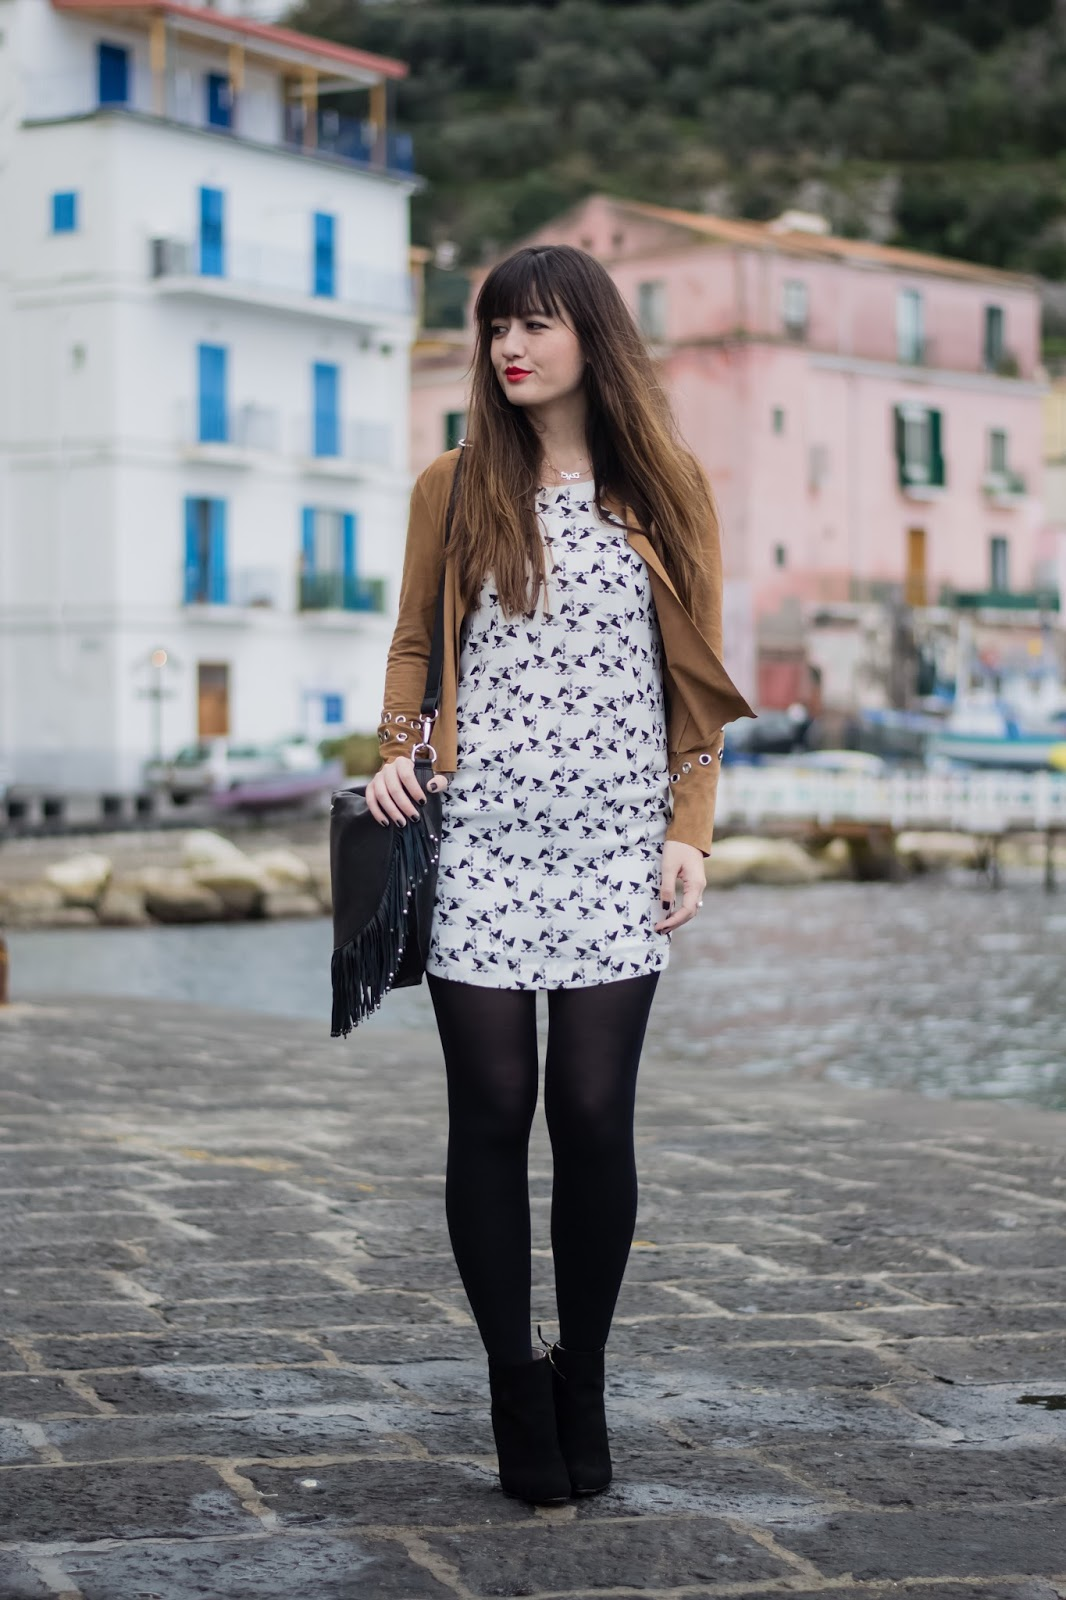 meet me in paree, blogger, fashion, look, style, chic, parisian, IKKS, Italy